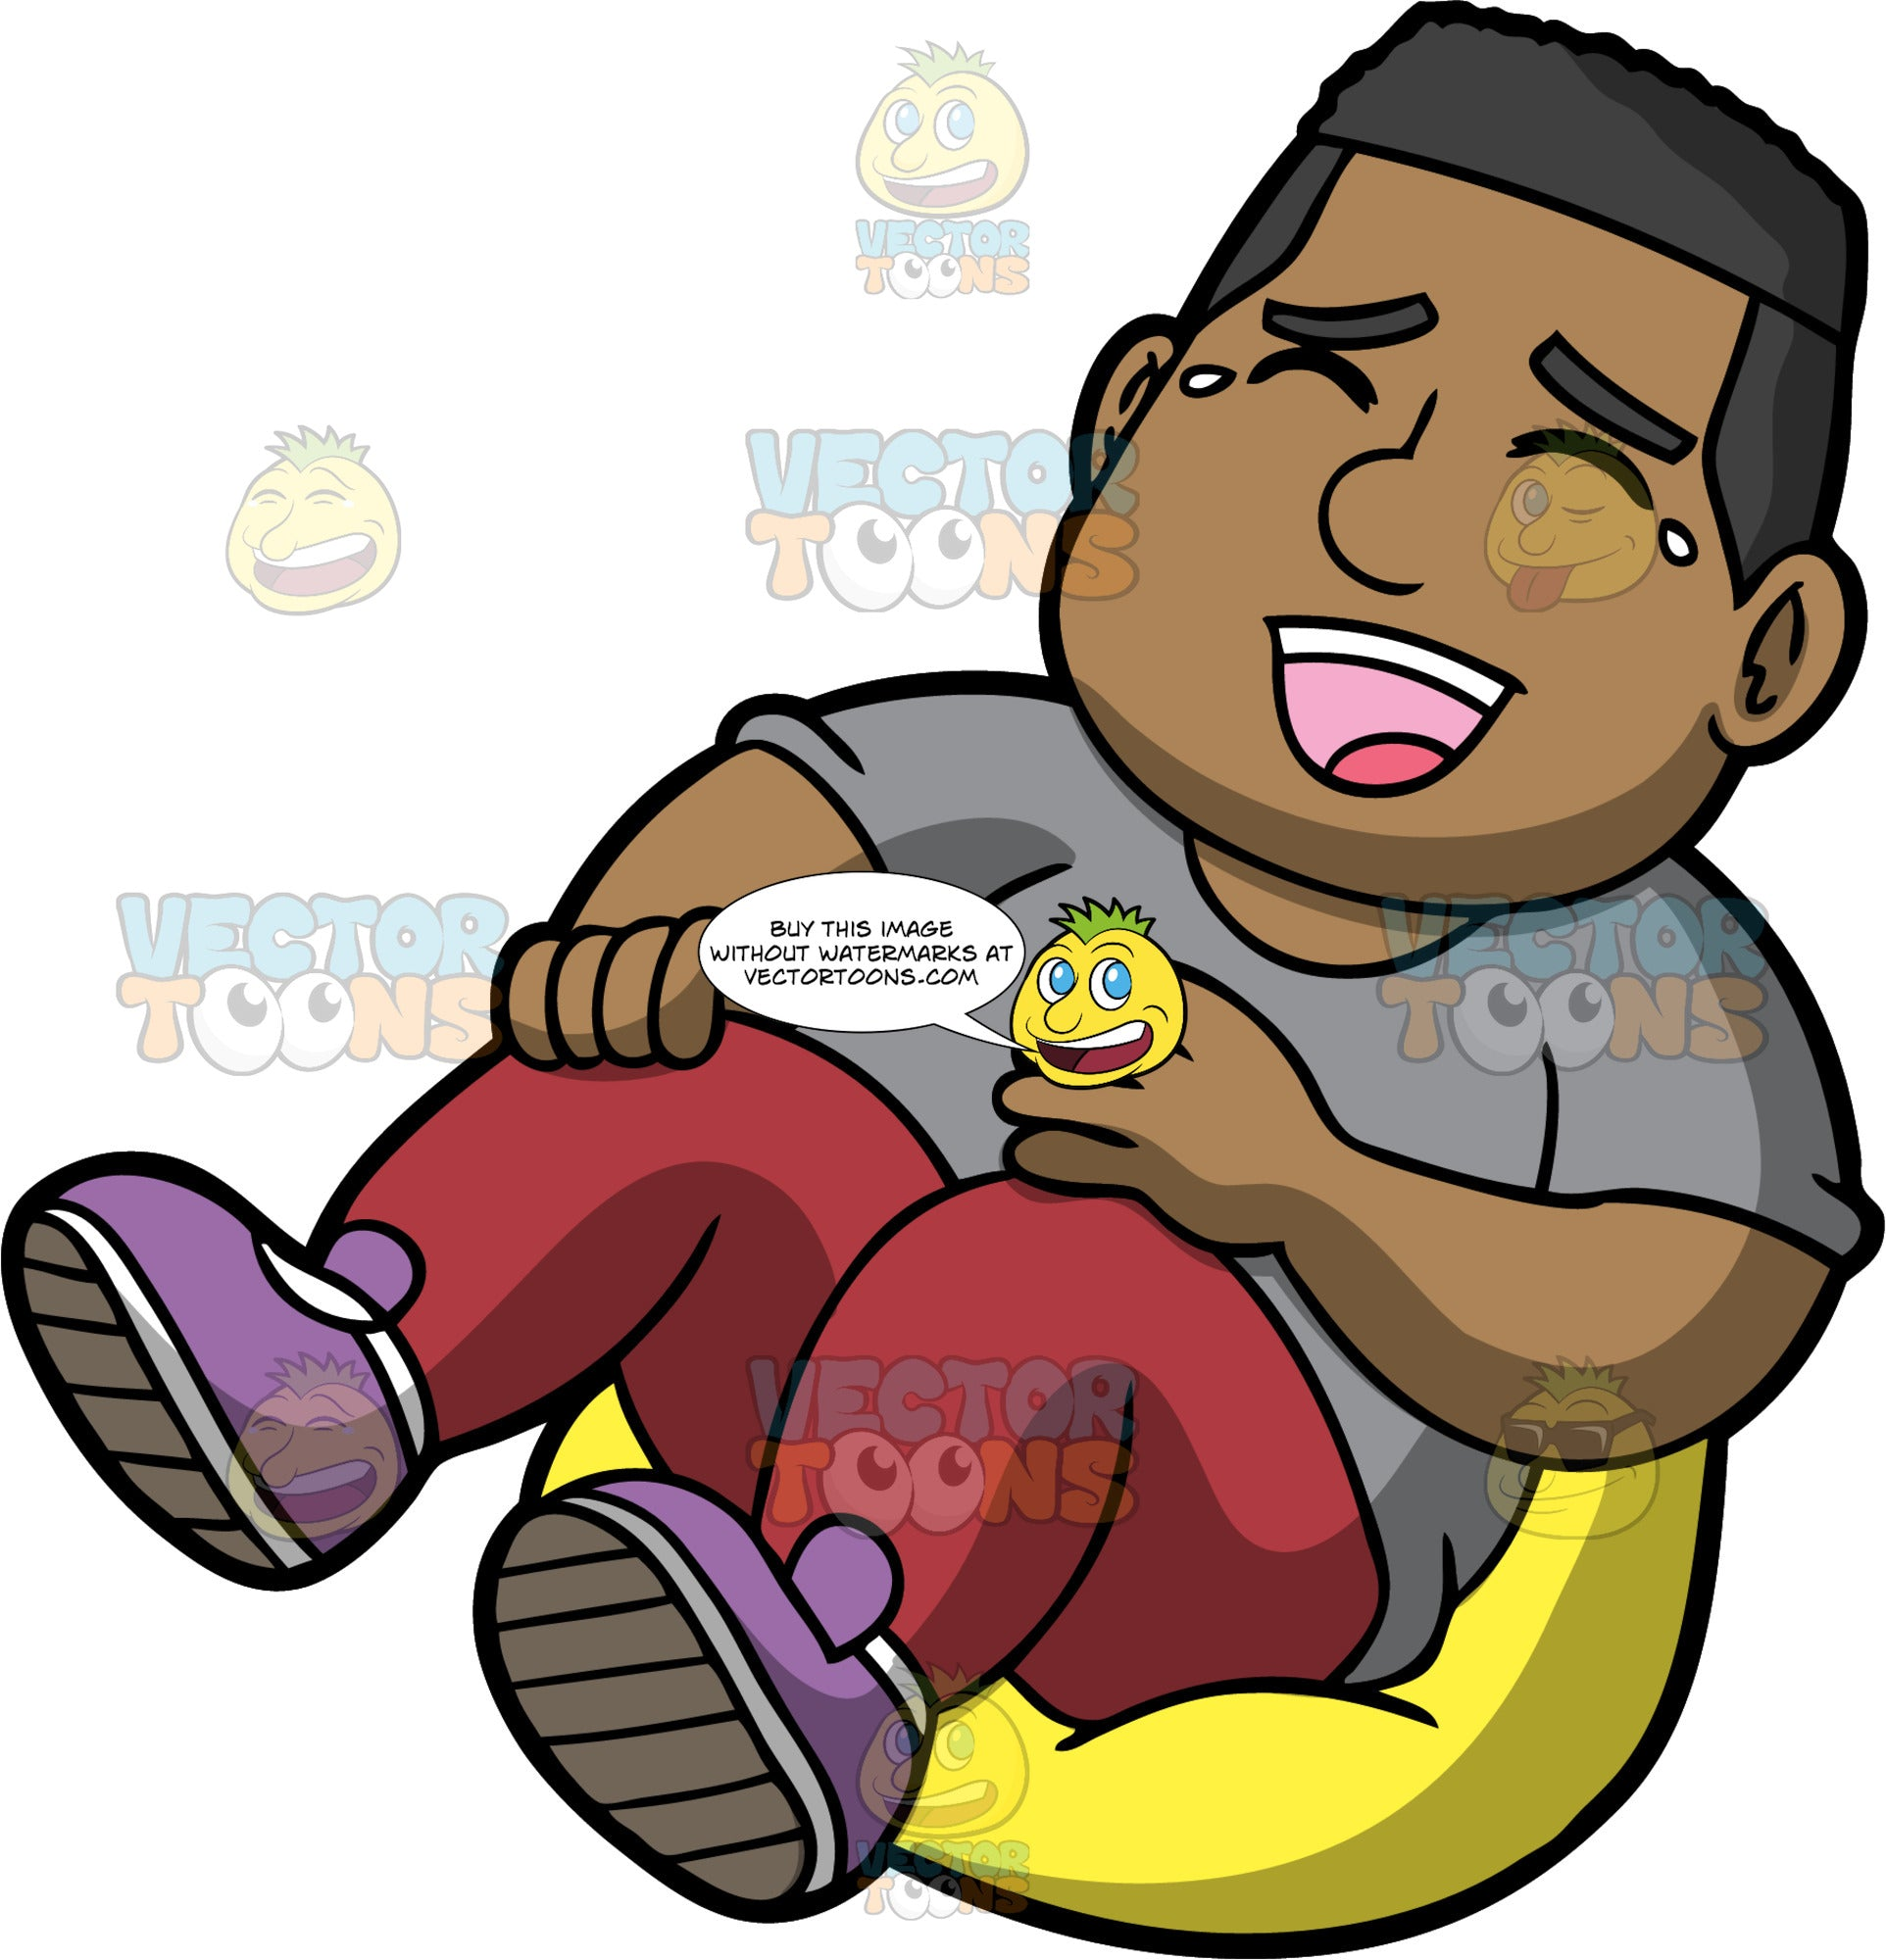 James Laughing Hysterically. A black man wearing burgundy pants, a gray t-shirt, and purple shoes, sitting on a yellow bean bag chair with his eyes closed and mouth wide open as he laughs uncontrollably at something